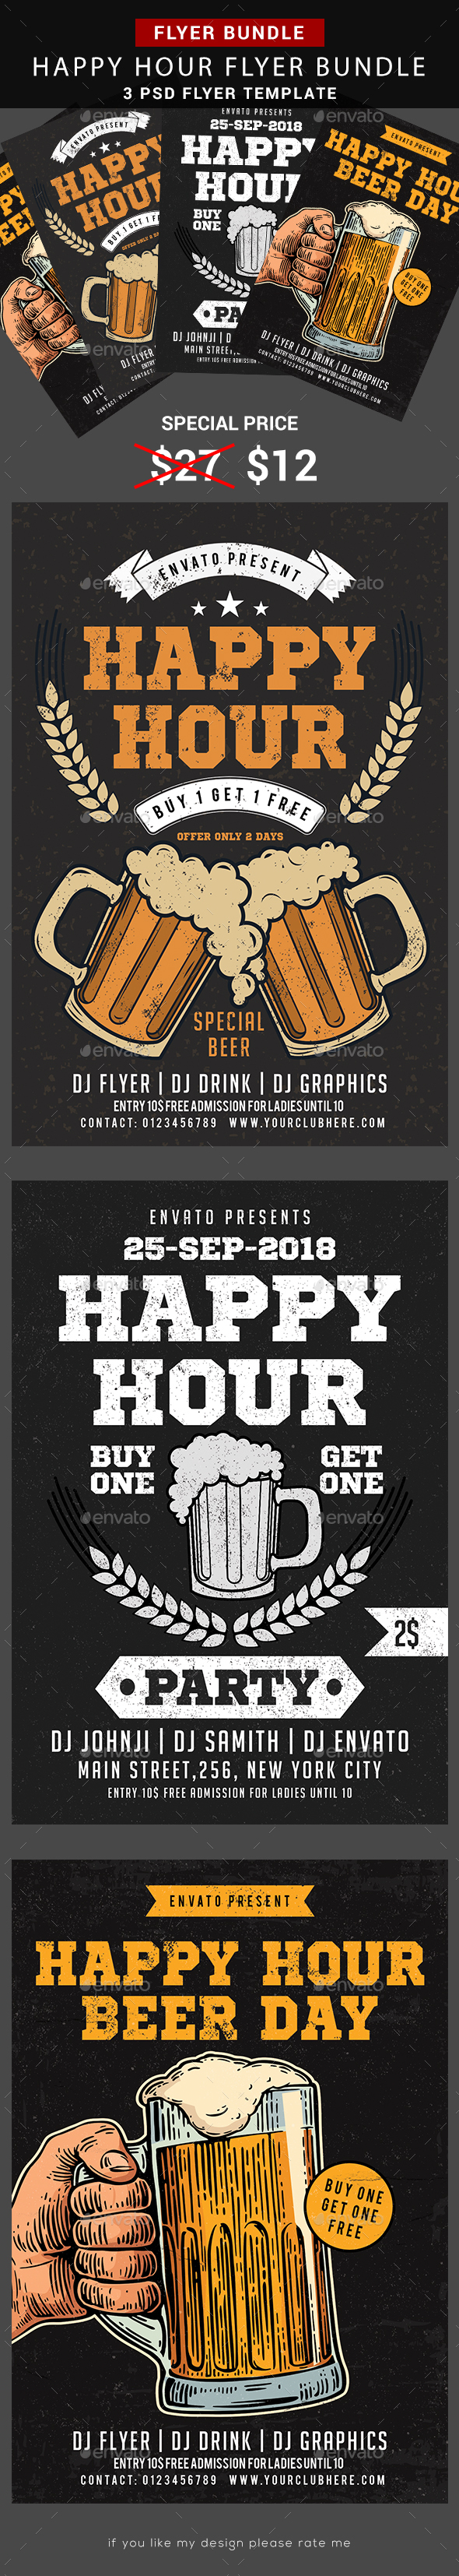 Happy Hour Beer Promotion Bundle - Events Flyers